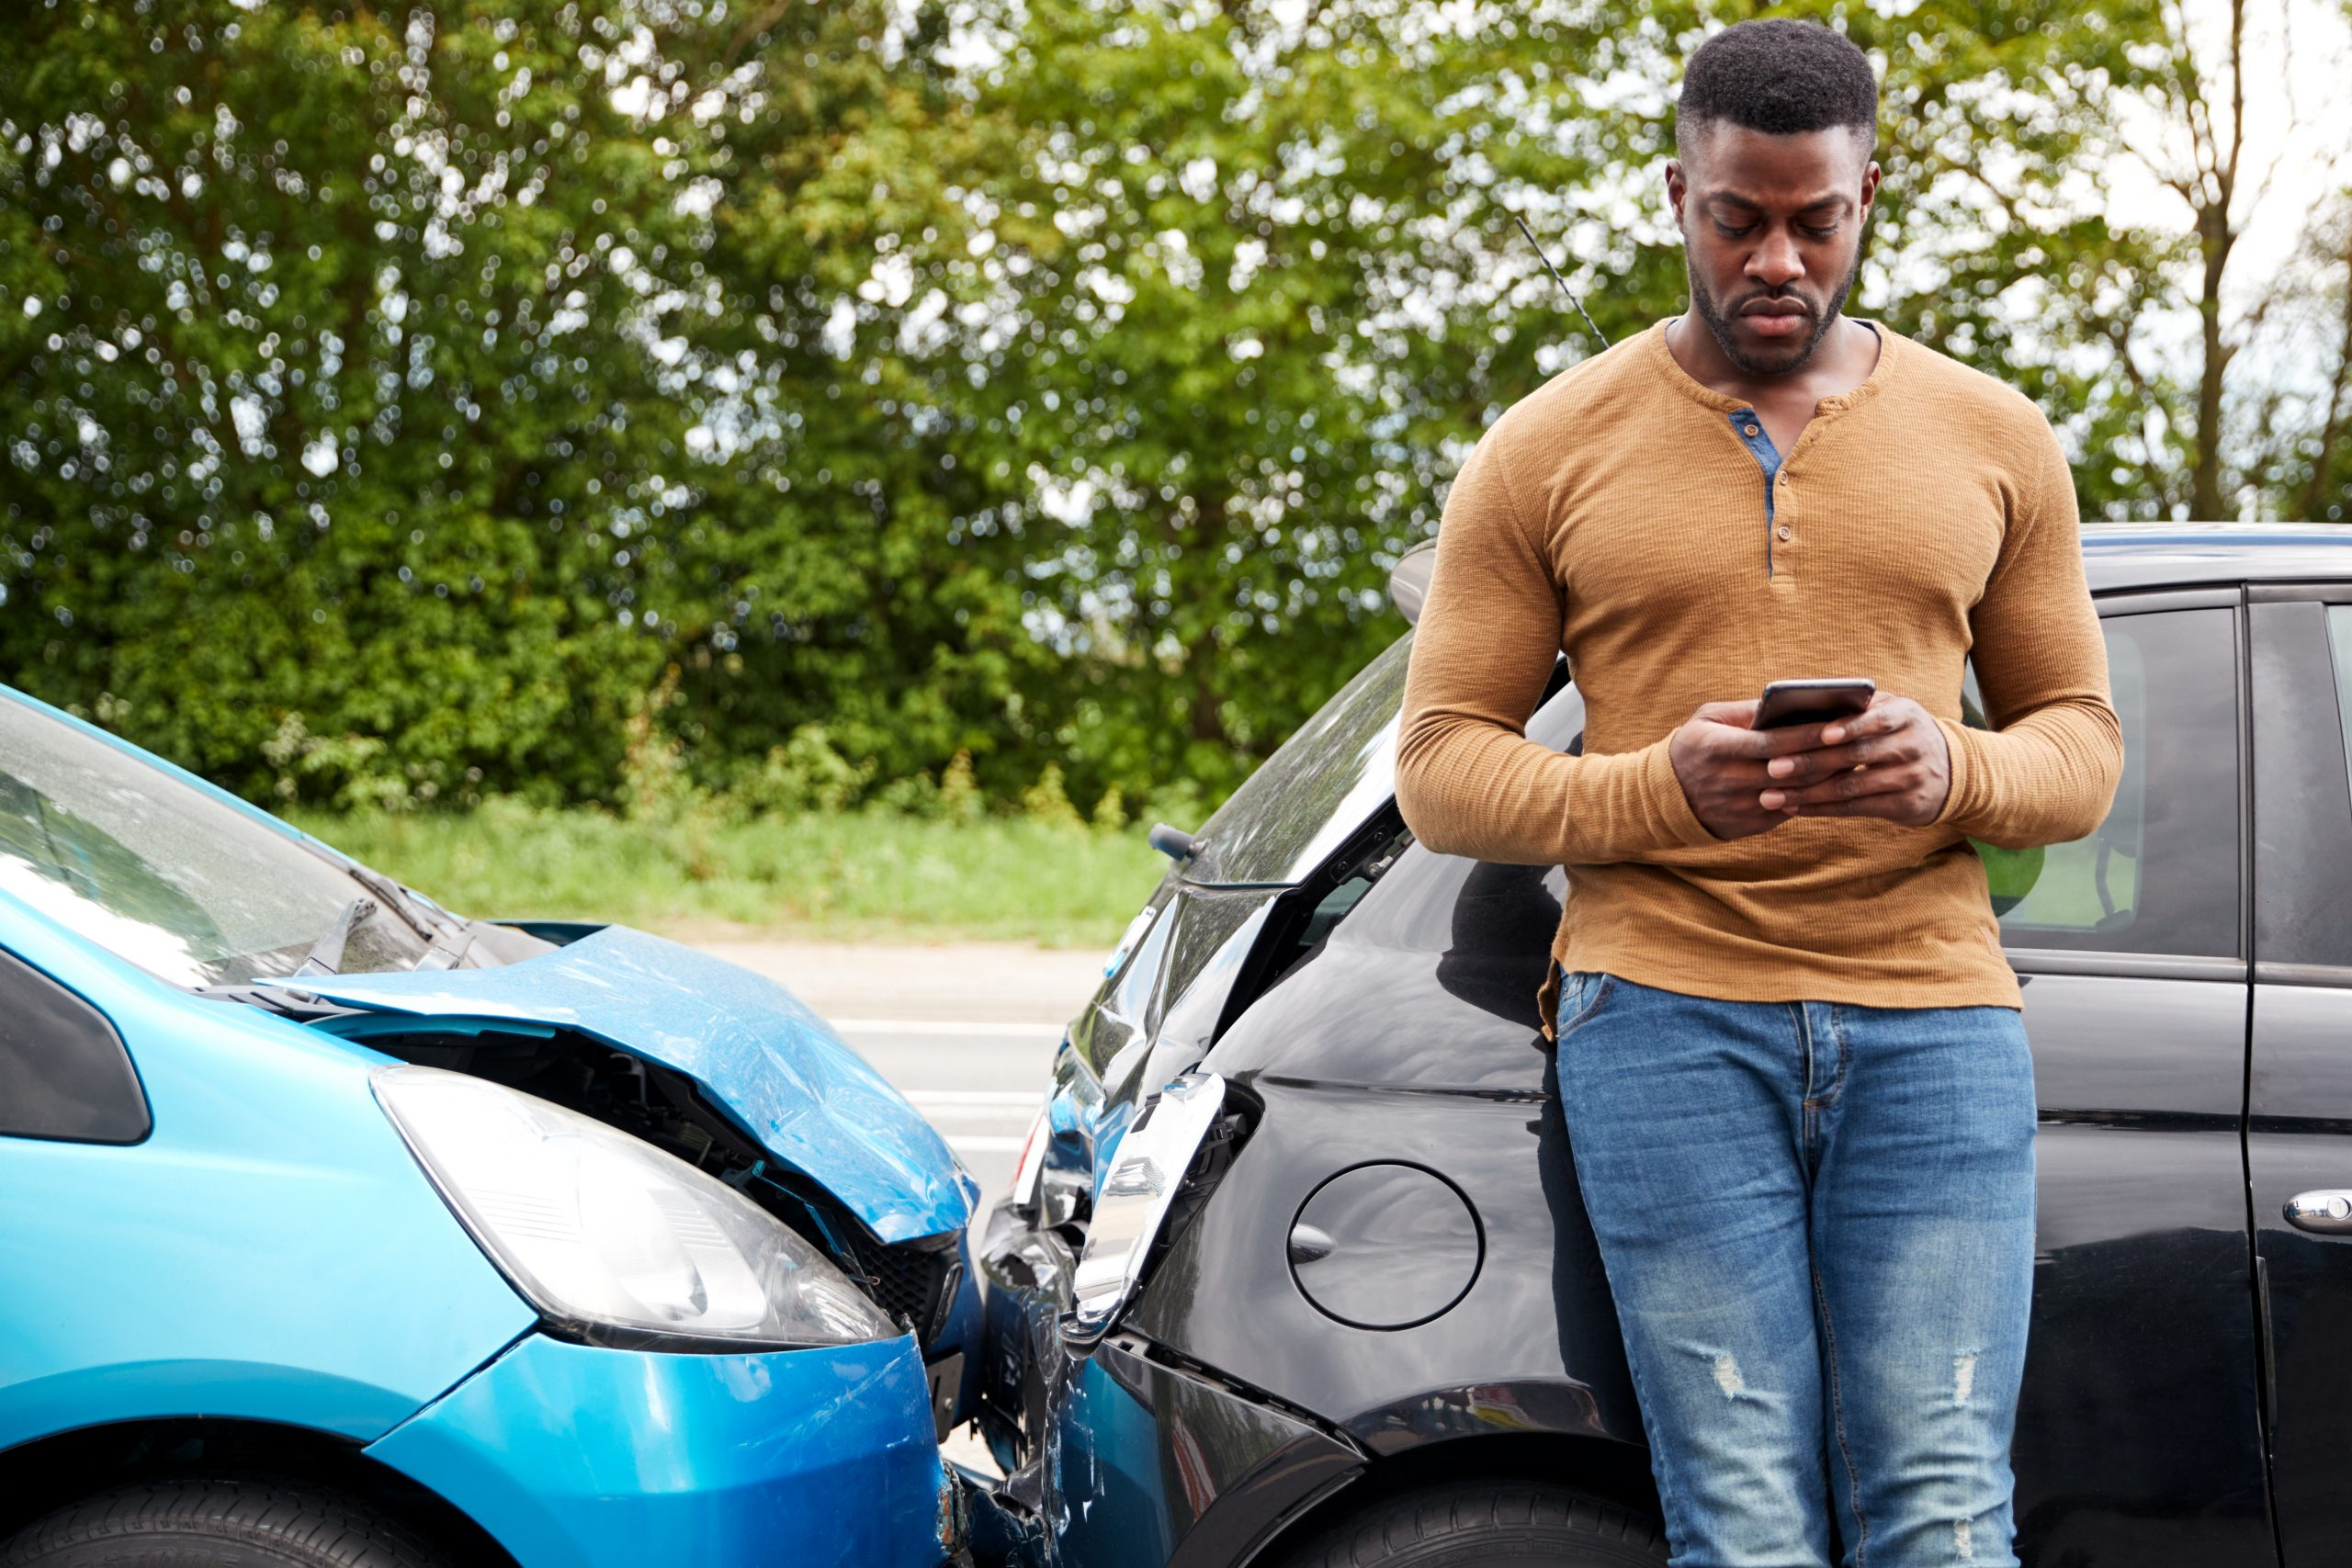 Person on a phone leaning against a car after getting into an accident